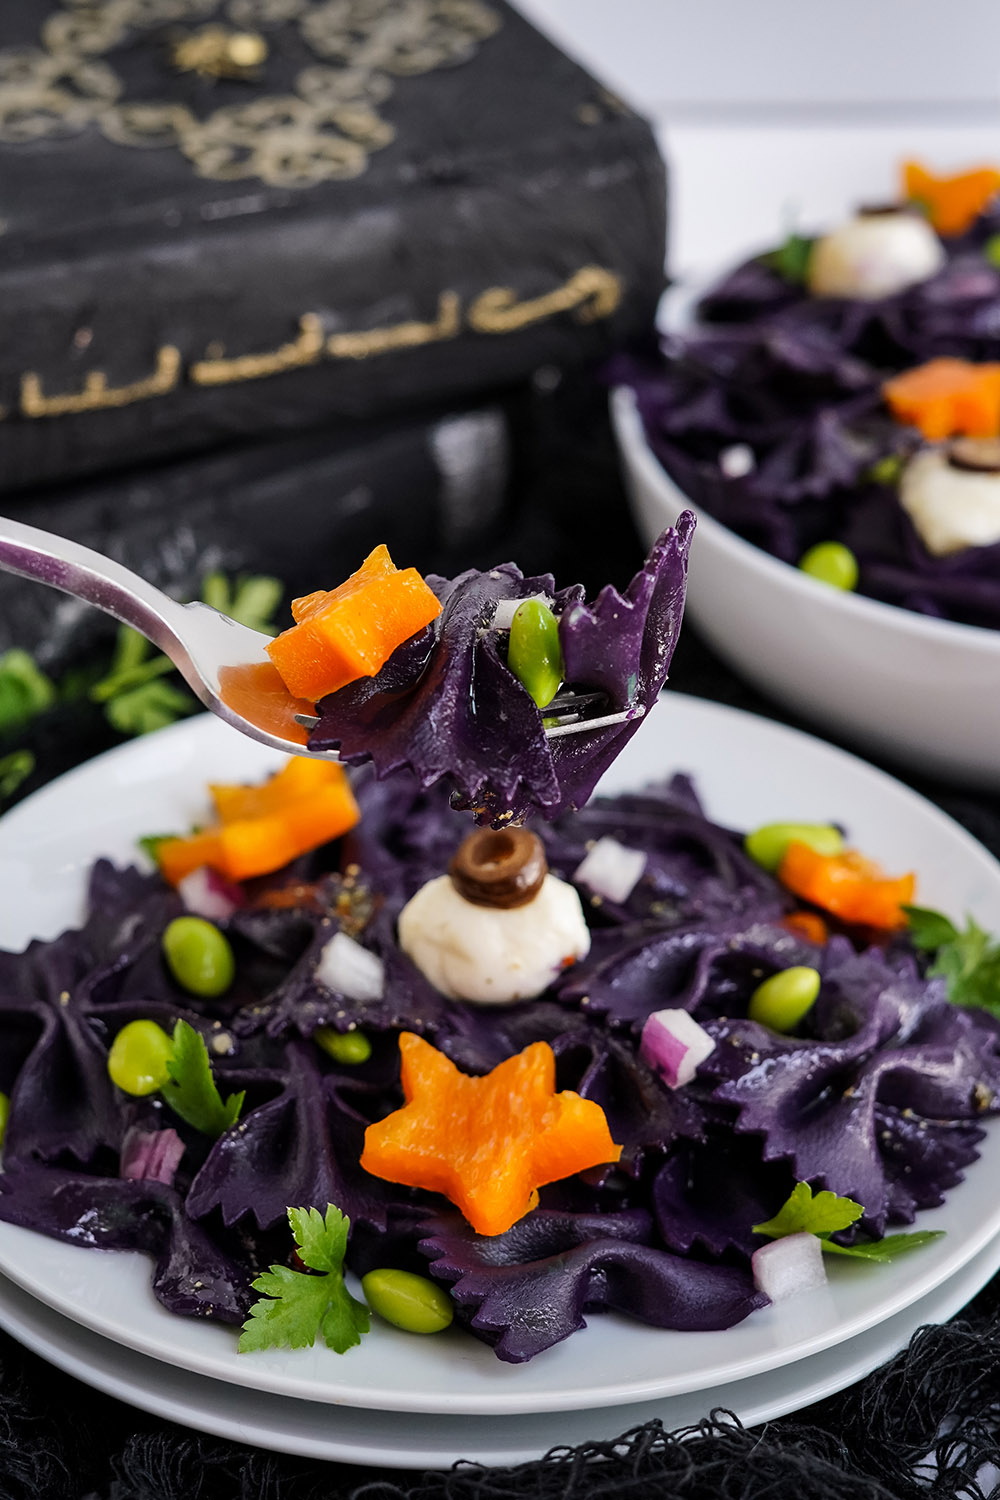 Forkful of black pasta salad with the bowl in the background.